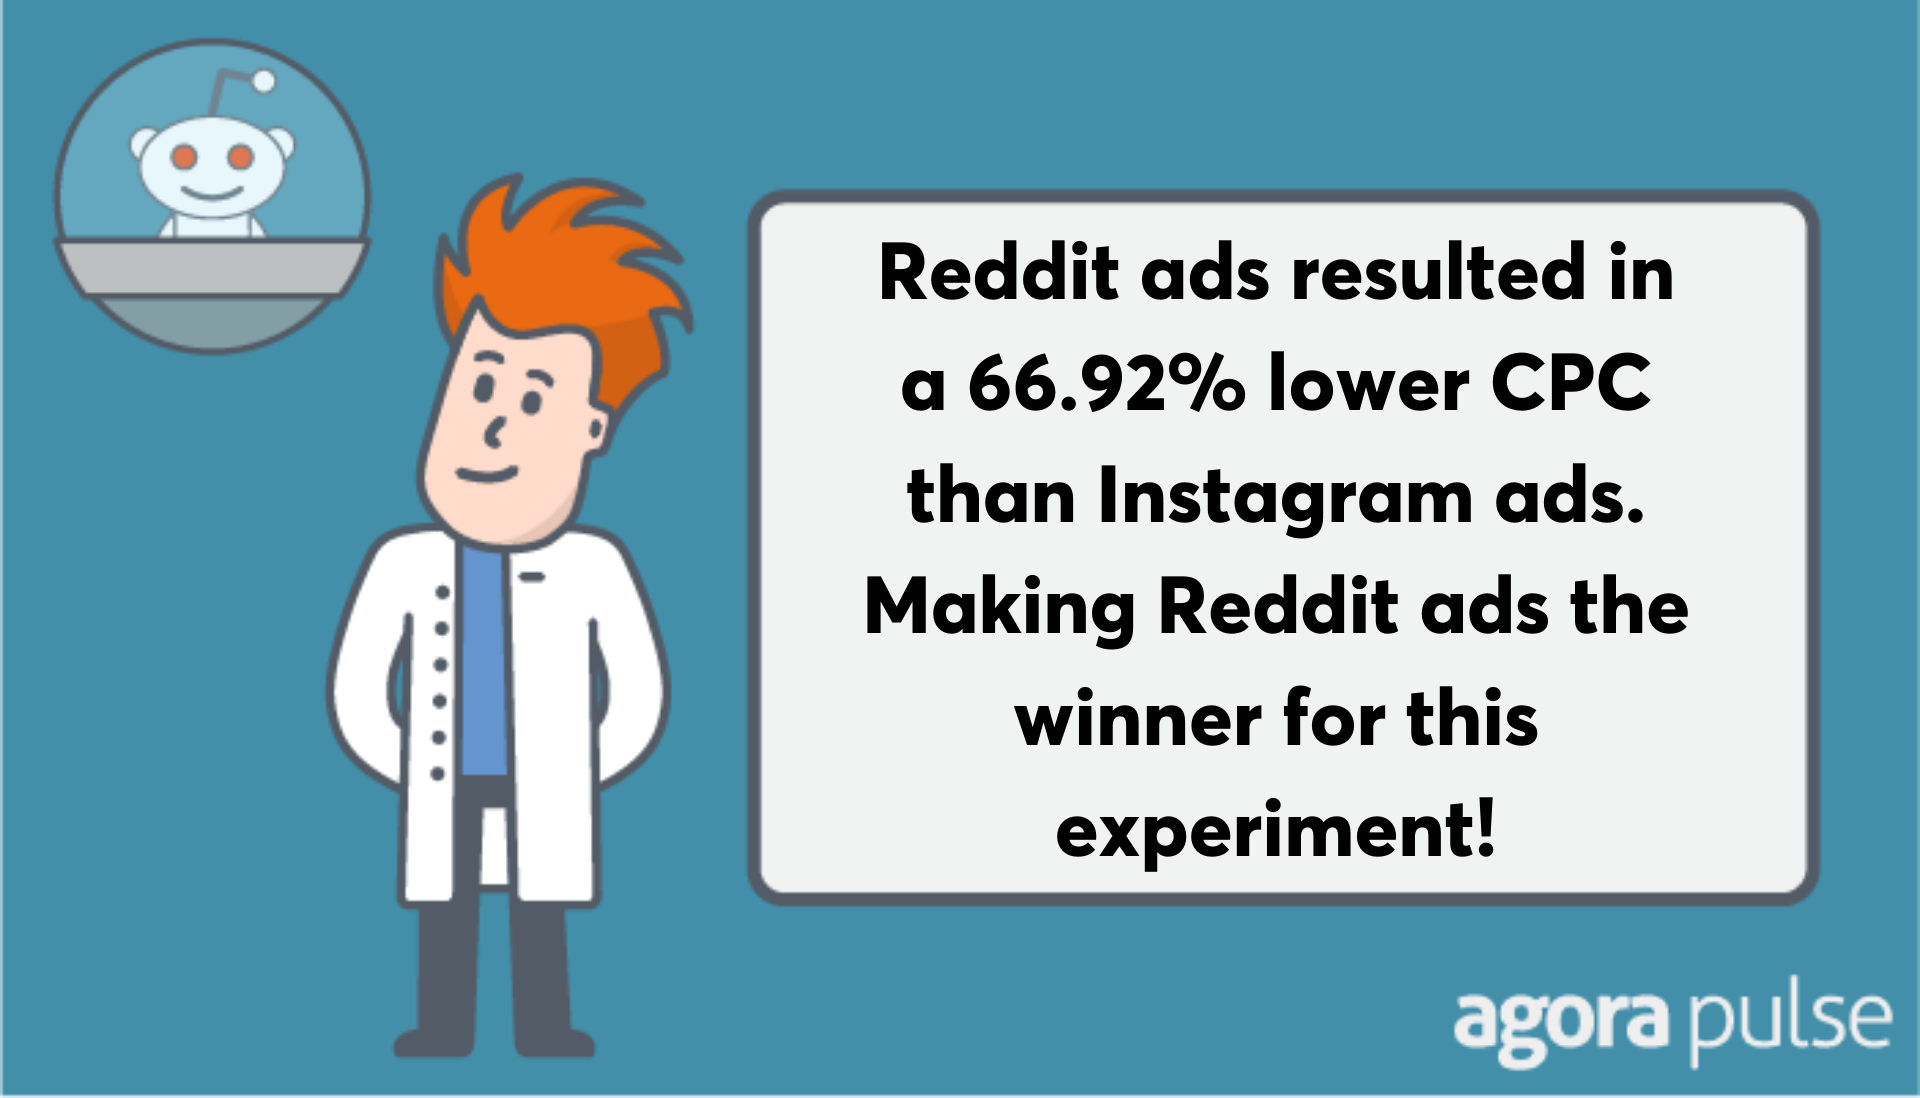 reddit ads resulted in 67% lower cpc than Instagram ads